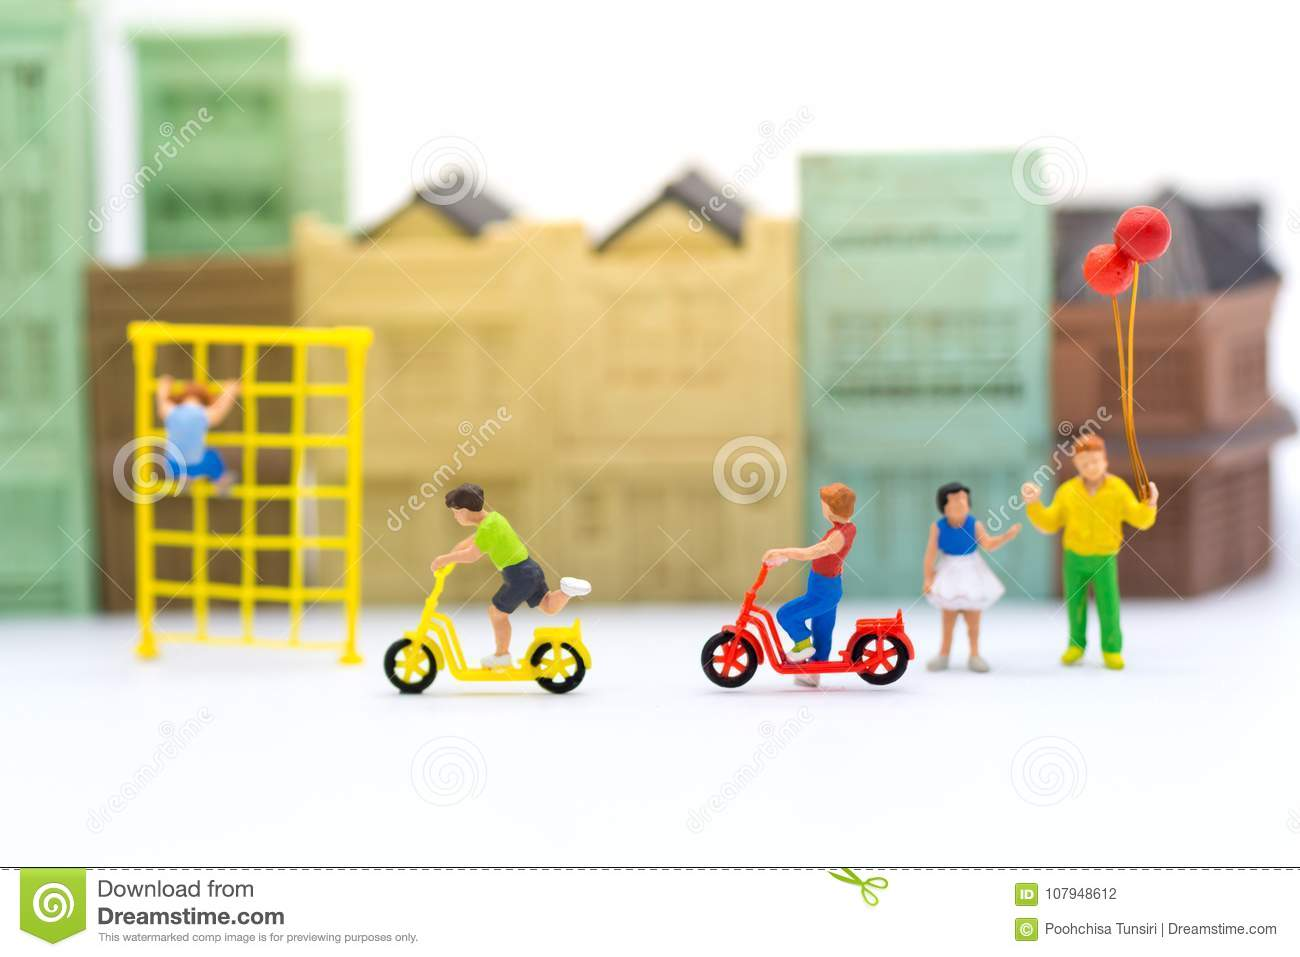 Miniature children: Boys cycling play fun in the playground. Image use for Children`s day